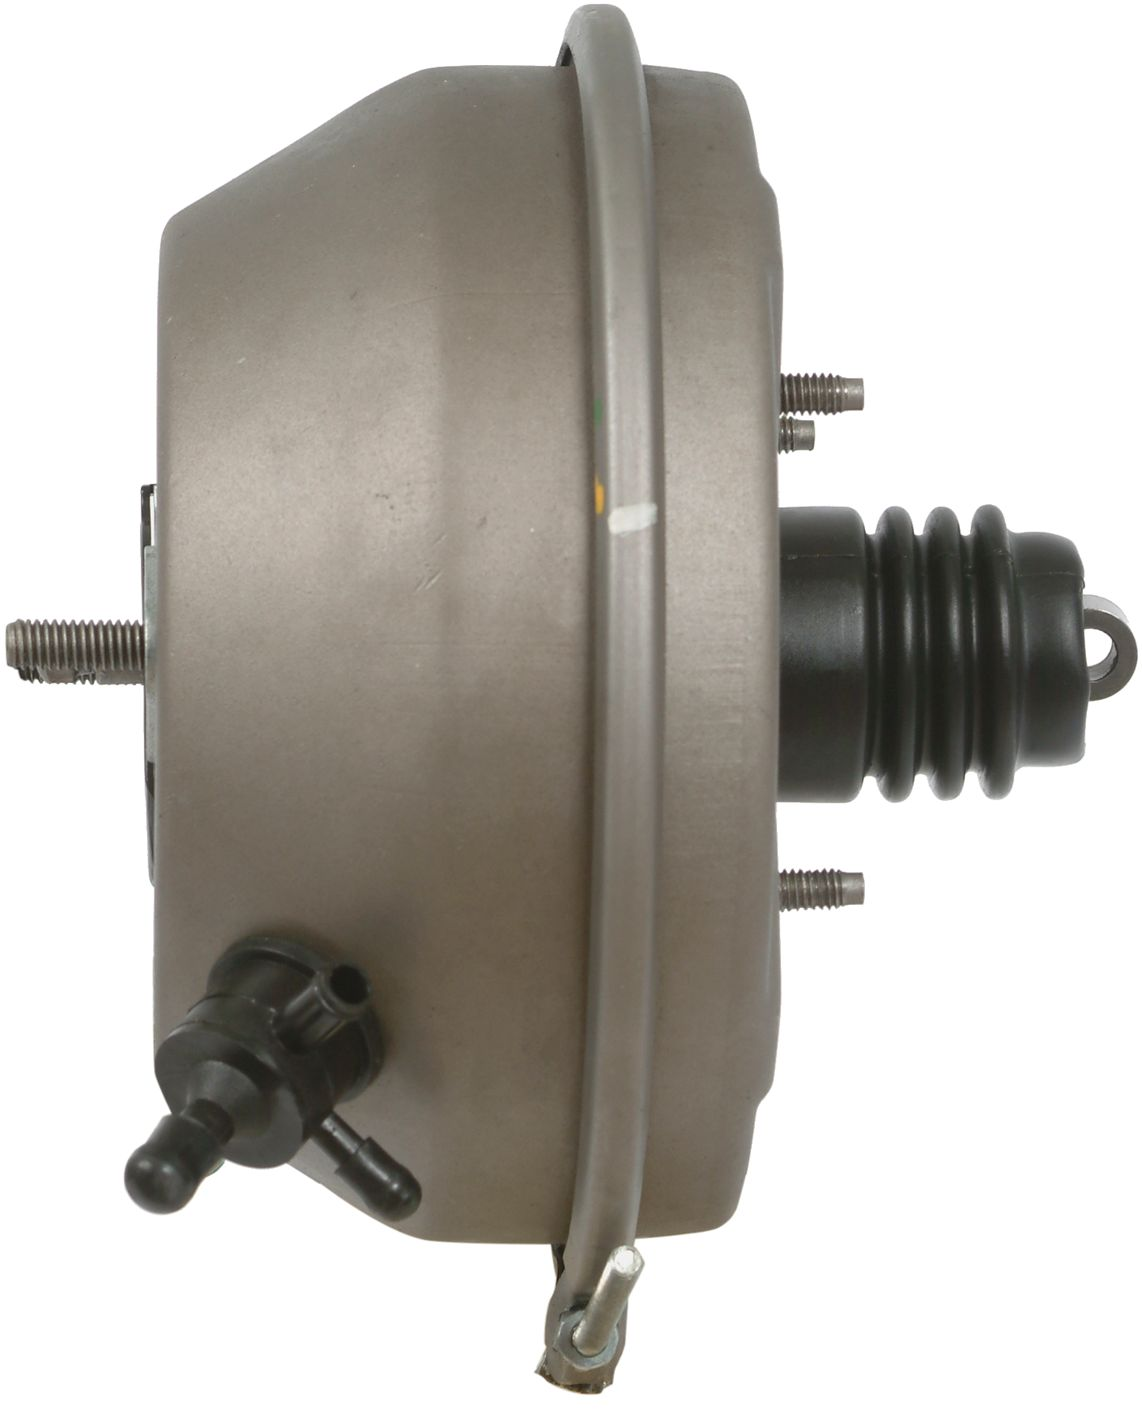 1963 ford thunderbird power brake booster a1 cardone 54 79401